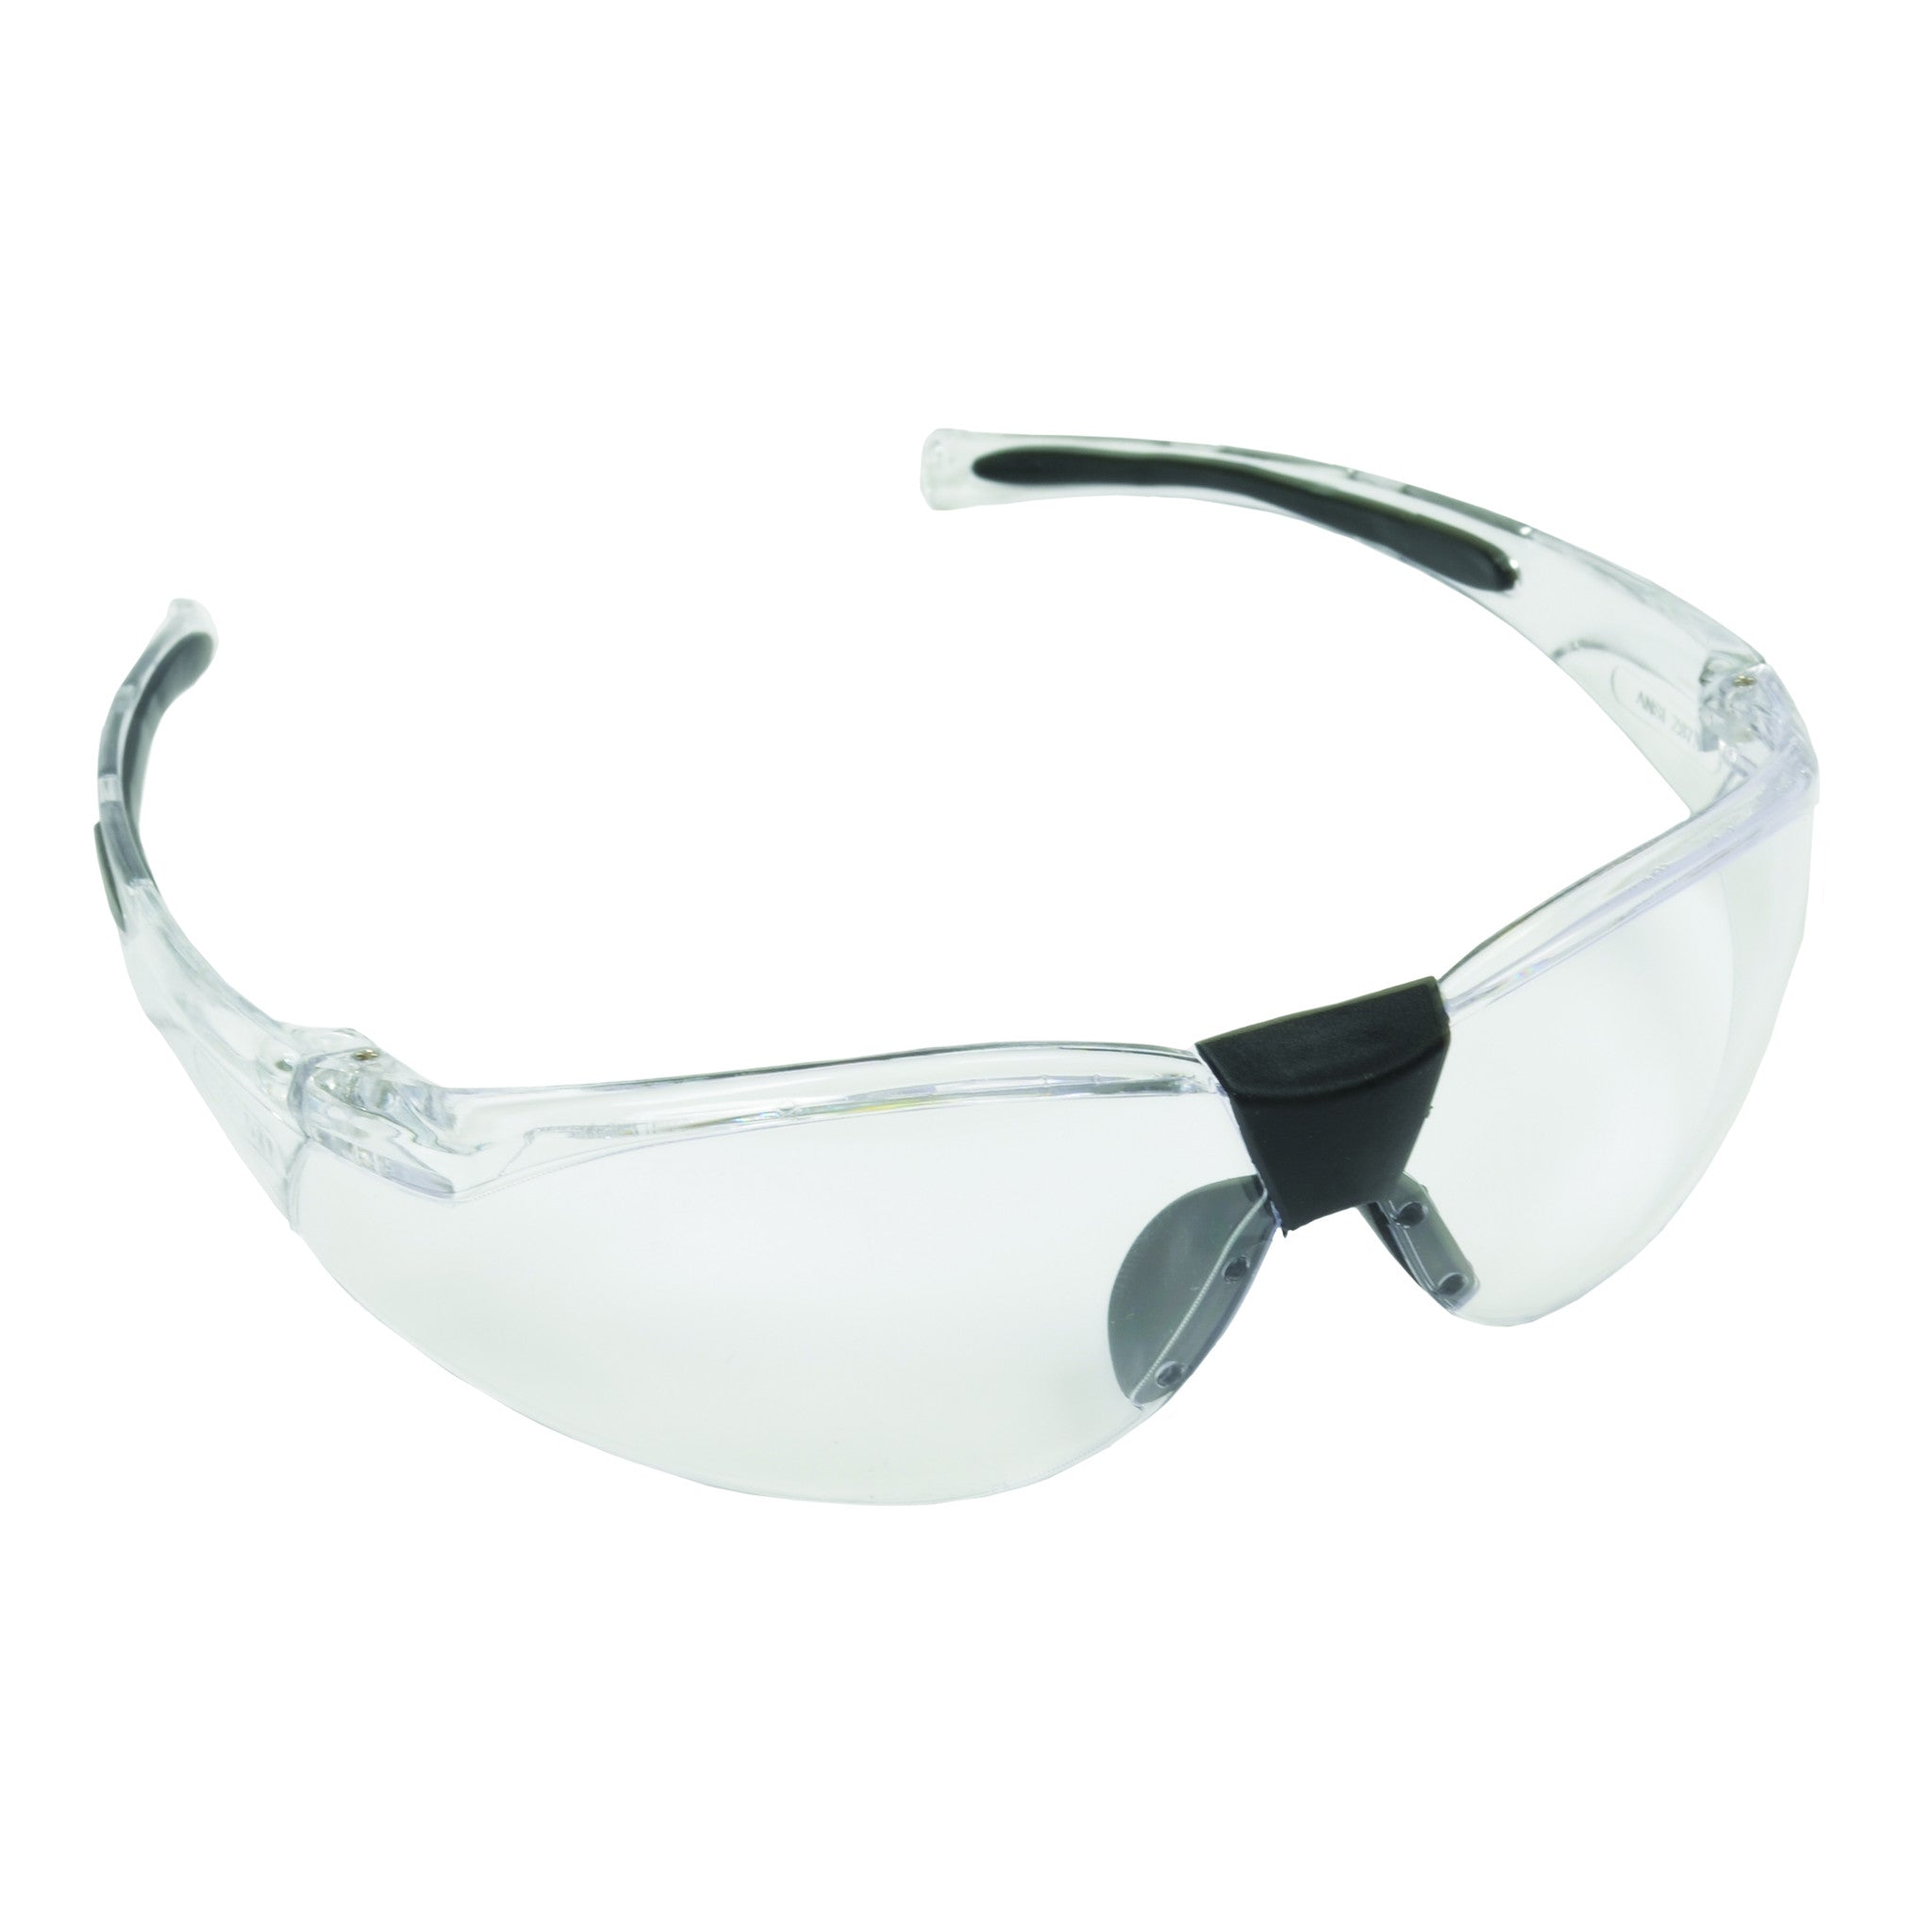 Safety Specs - peterdrew.com